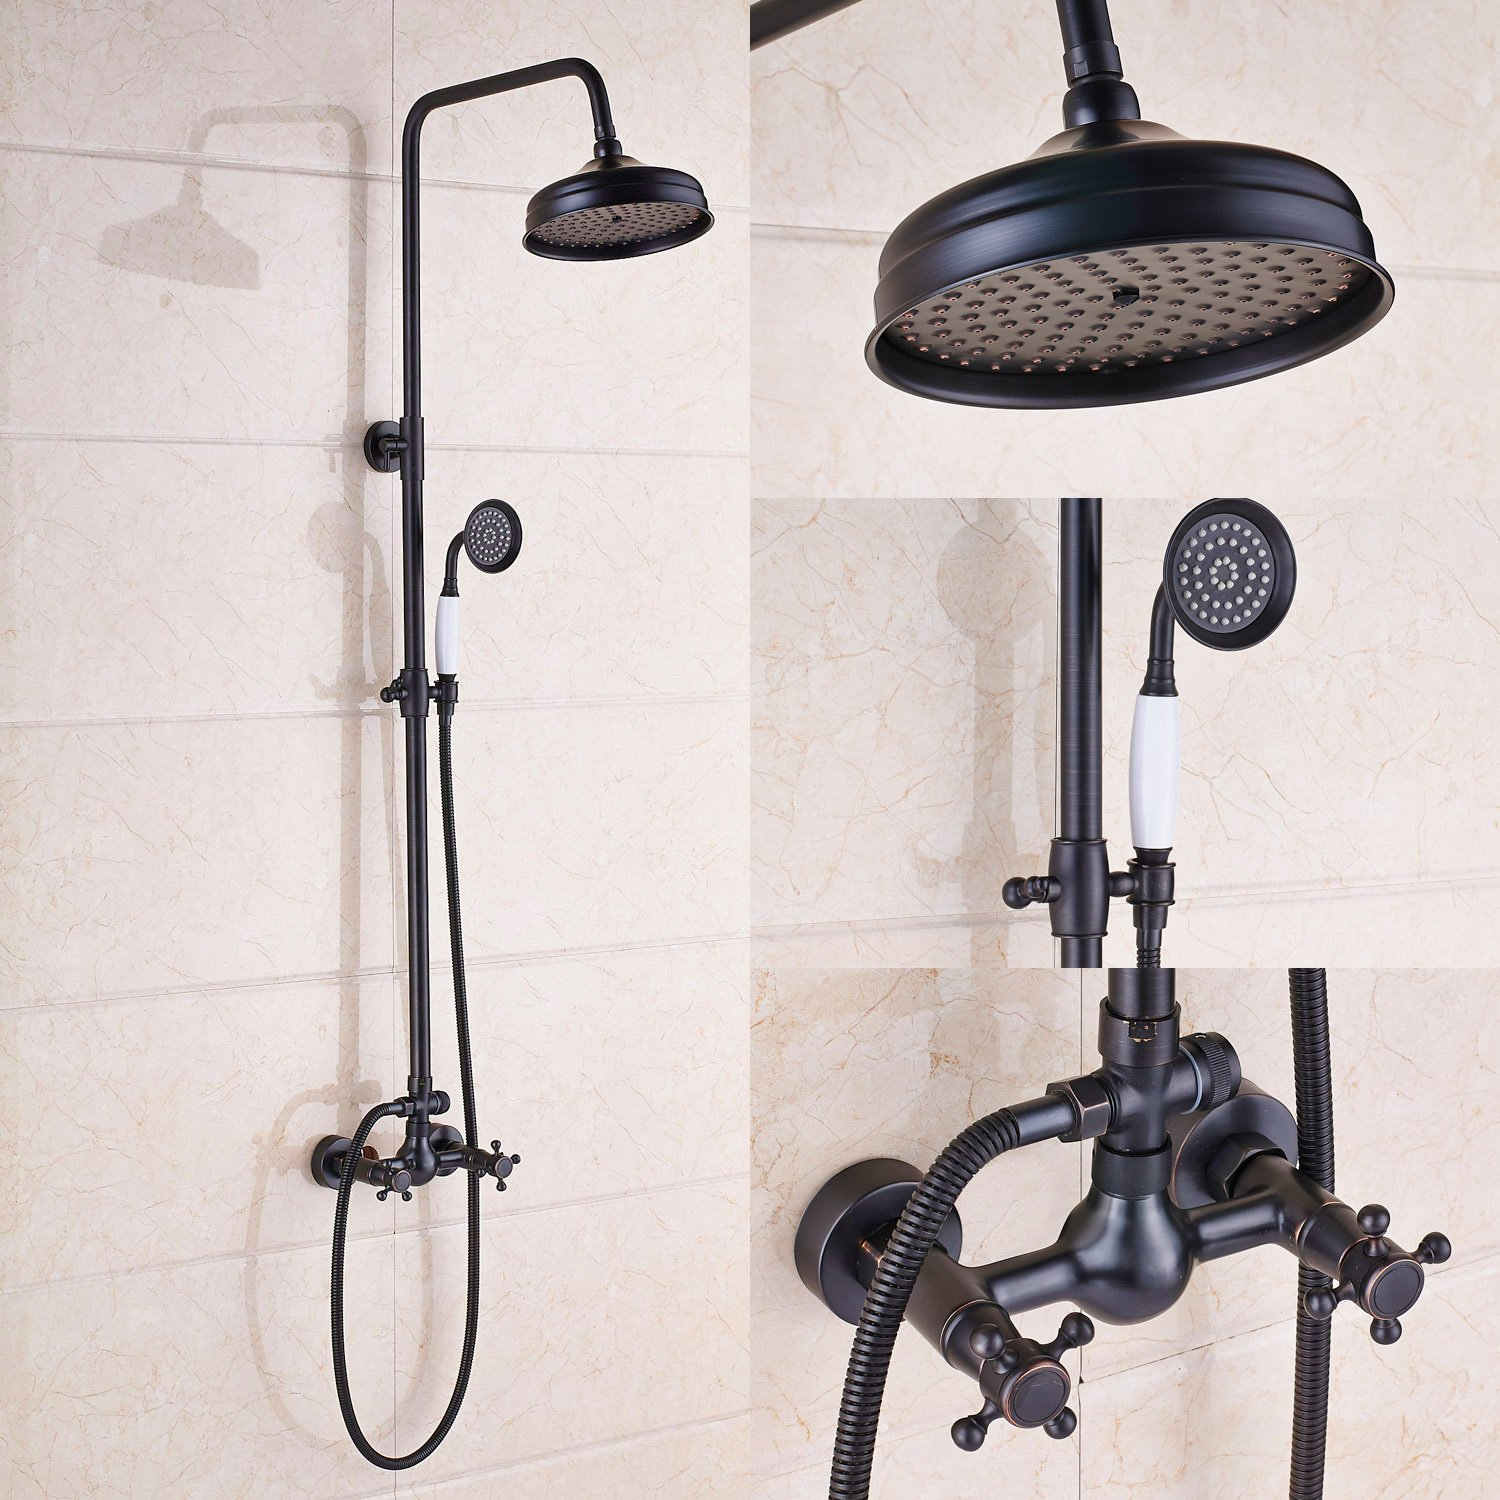 Rozin Bathroom 2 Knobs Mixer Shower Faucet Set 8-inch Rain Shower Head + Hand Spray Oil Rubbed Bronze by Rozin